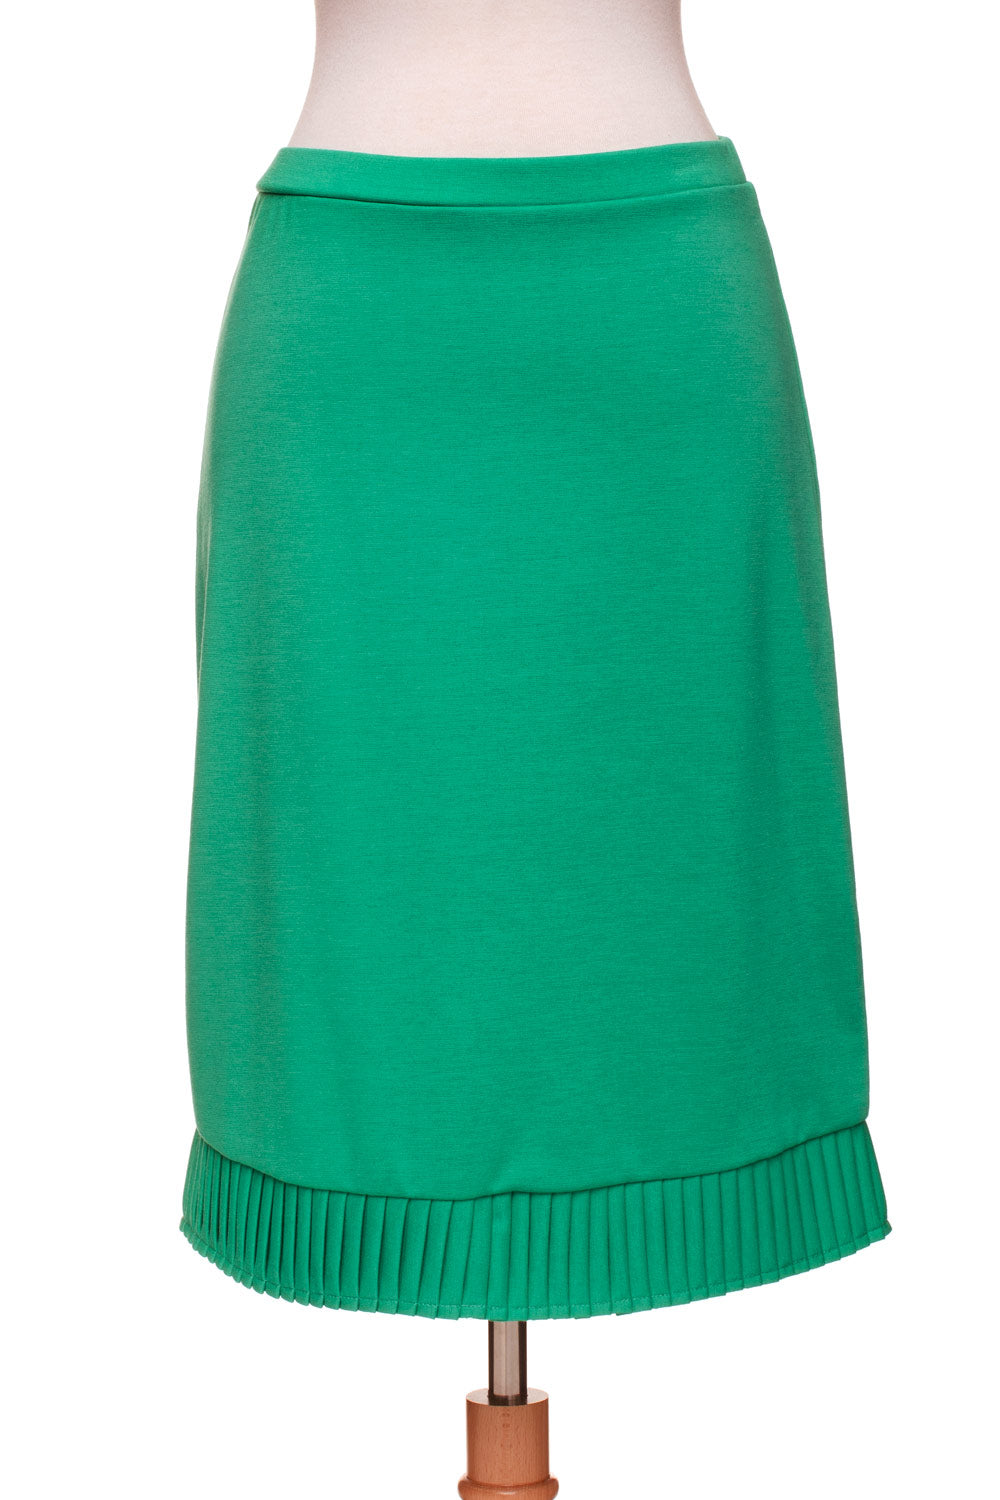 Type 1 Reverie Skirt in Green